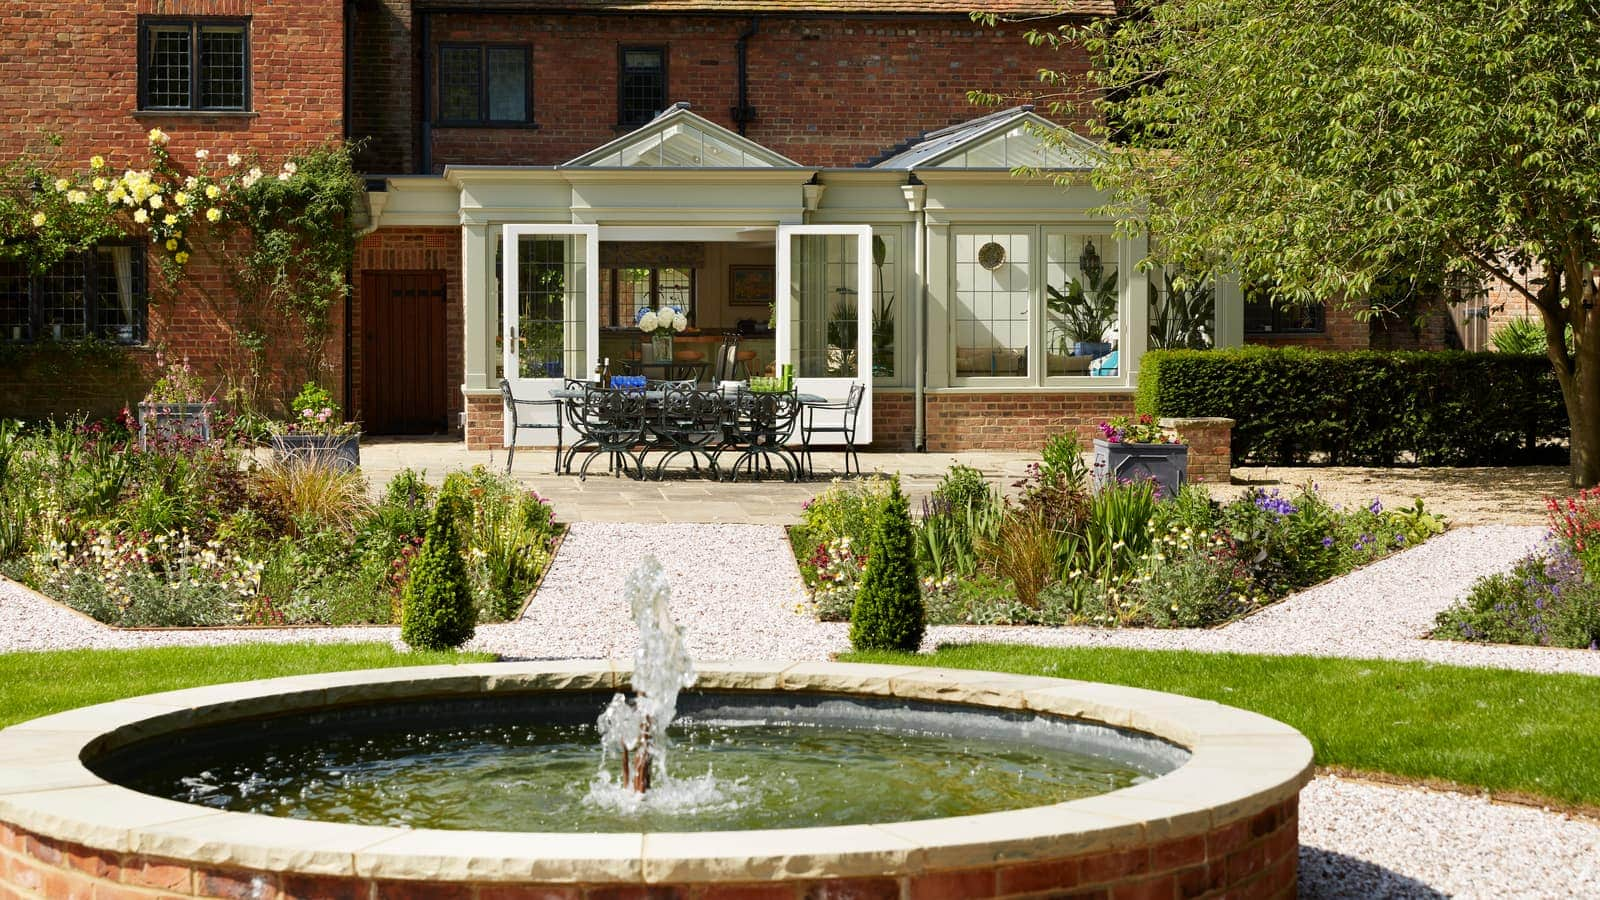 Long shot of twin gabled garden room with water feature in foreground